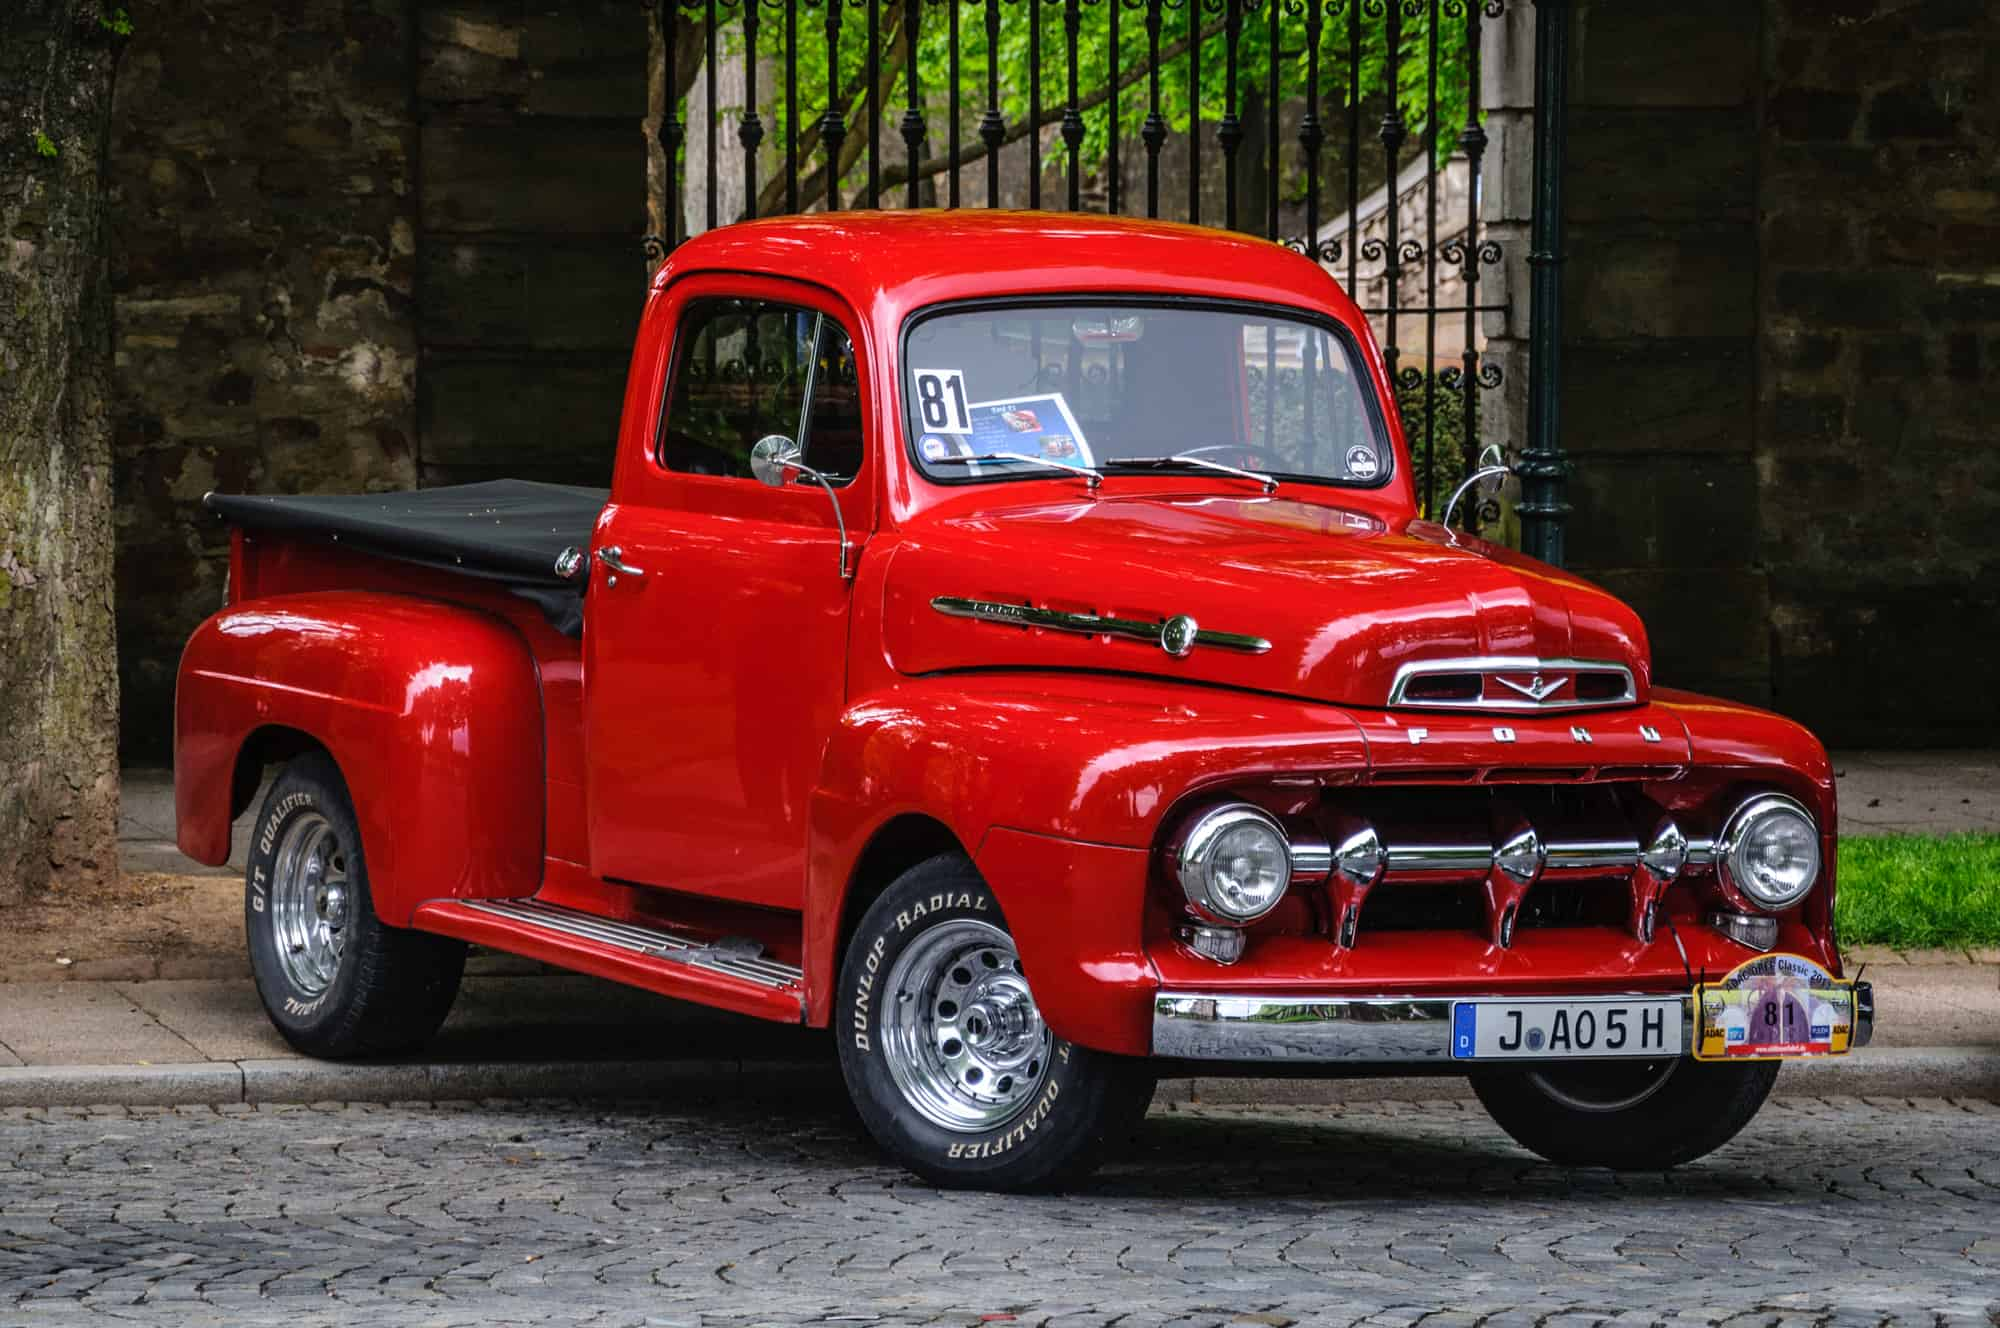 Chevy Coe Cabover Truck also Fef Ae Ec C A as well Chevy Coe Cabover Truck besides Ford F Candy Red Bodie Stroud moreover Db F D D Bbea A B E A. on customs chevy coe truck